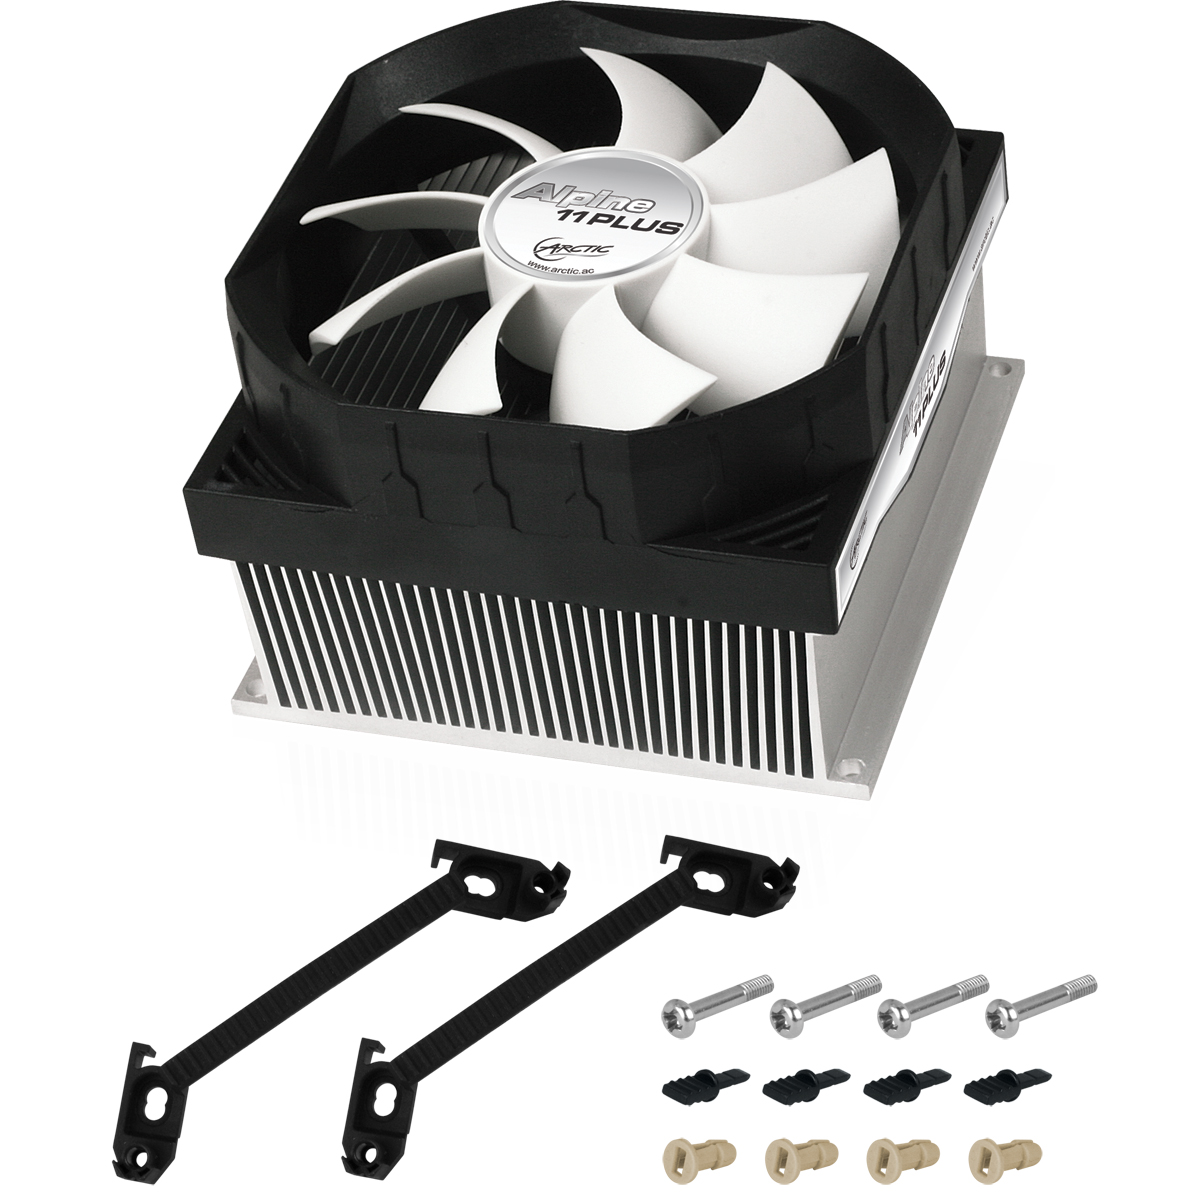 FAN x CPU ARCTIC ALPINE 11 PLUS INTEL